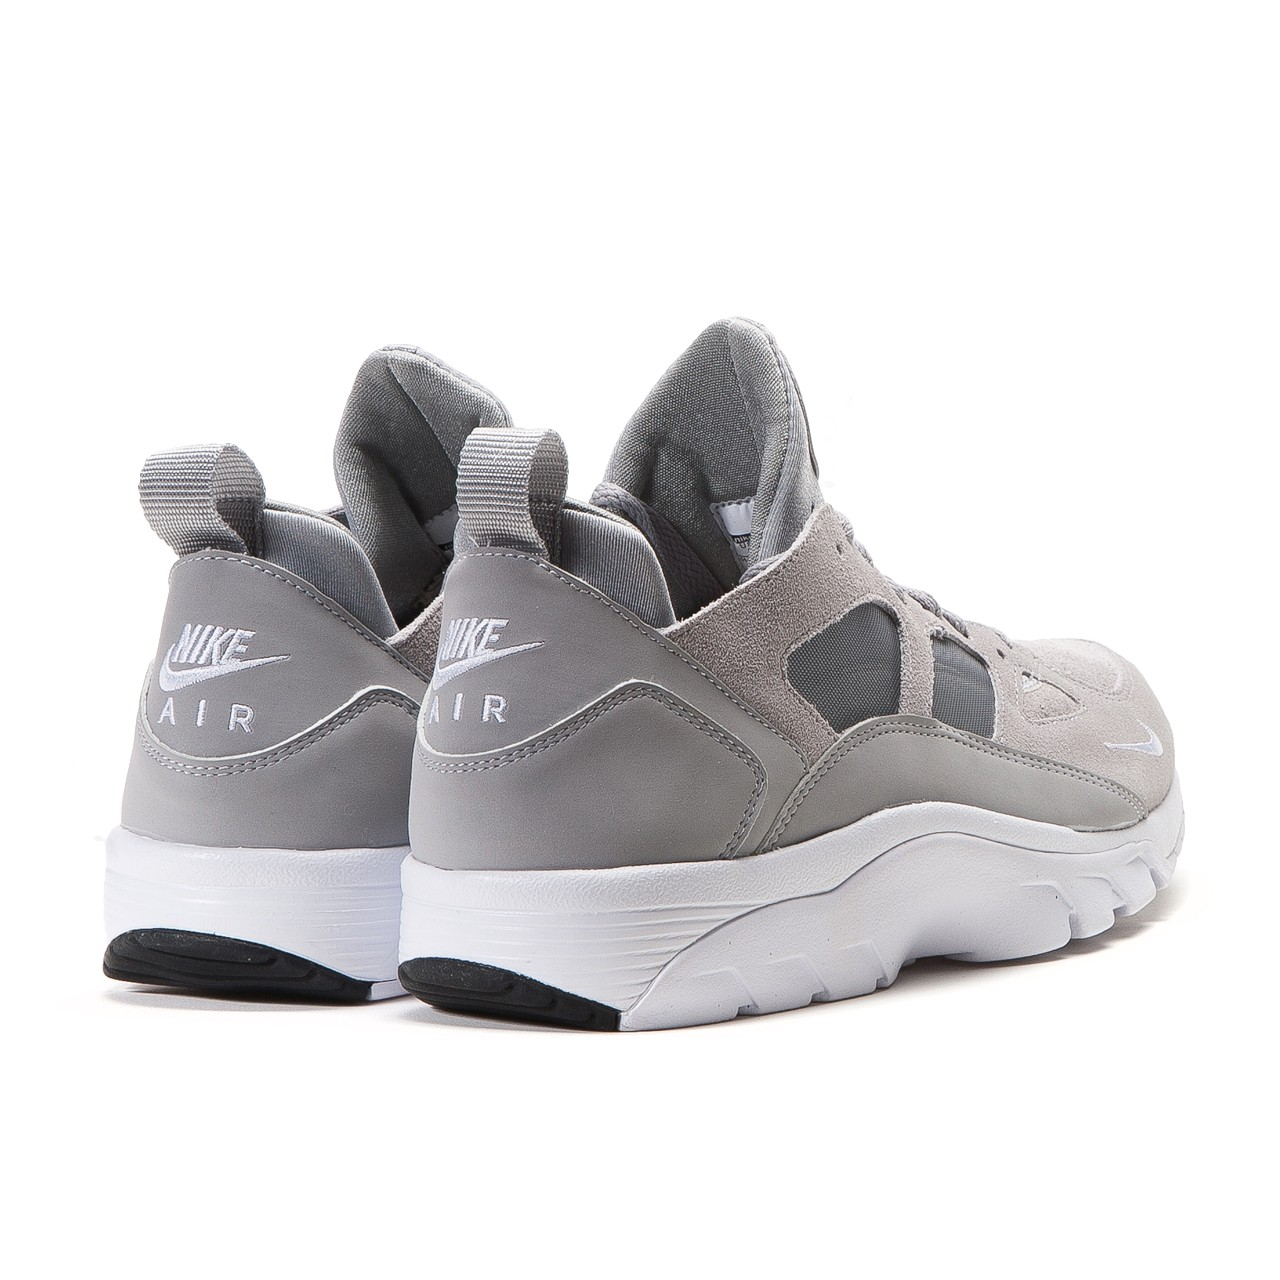 2bd8be80624 new zealand nike air trainer huarache low wolf grey disponible 12278 134f9   discount code for nike air trainer huarache low wolf grey 3fd41 77852